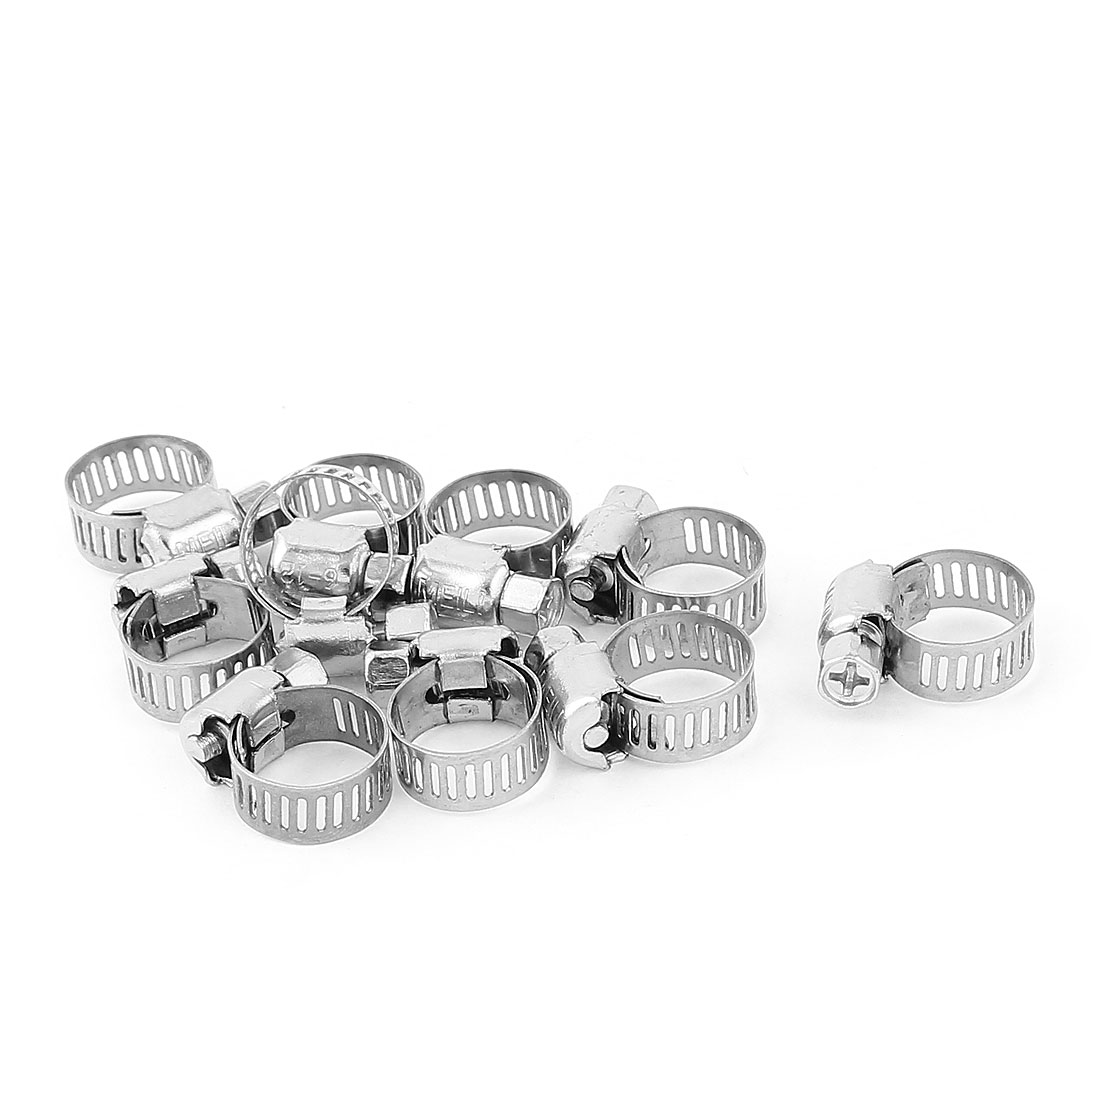 Stainless Steel Adjustable 6-12mm Pipe Tube Hose Clip Clamp 10pcs